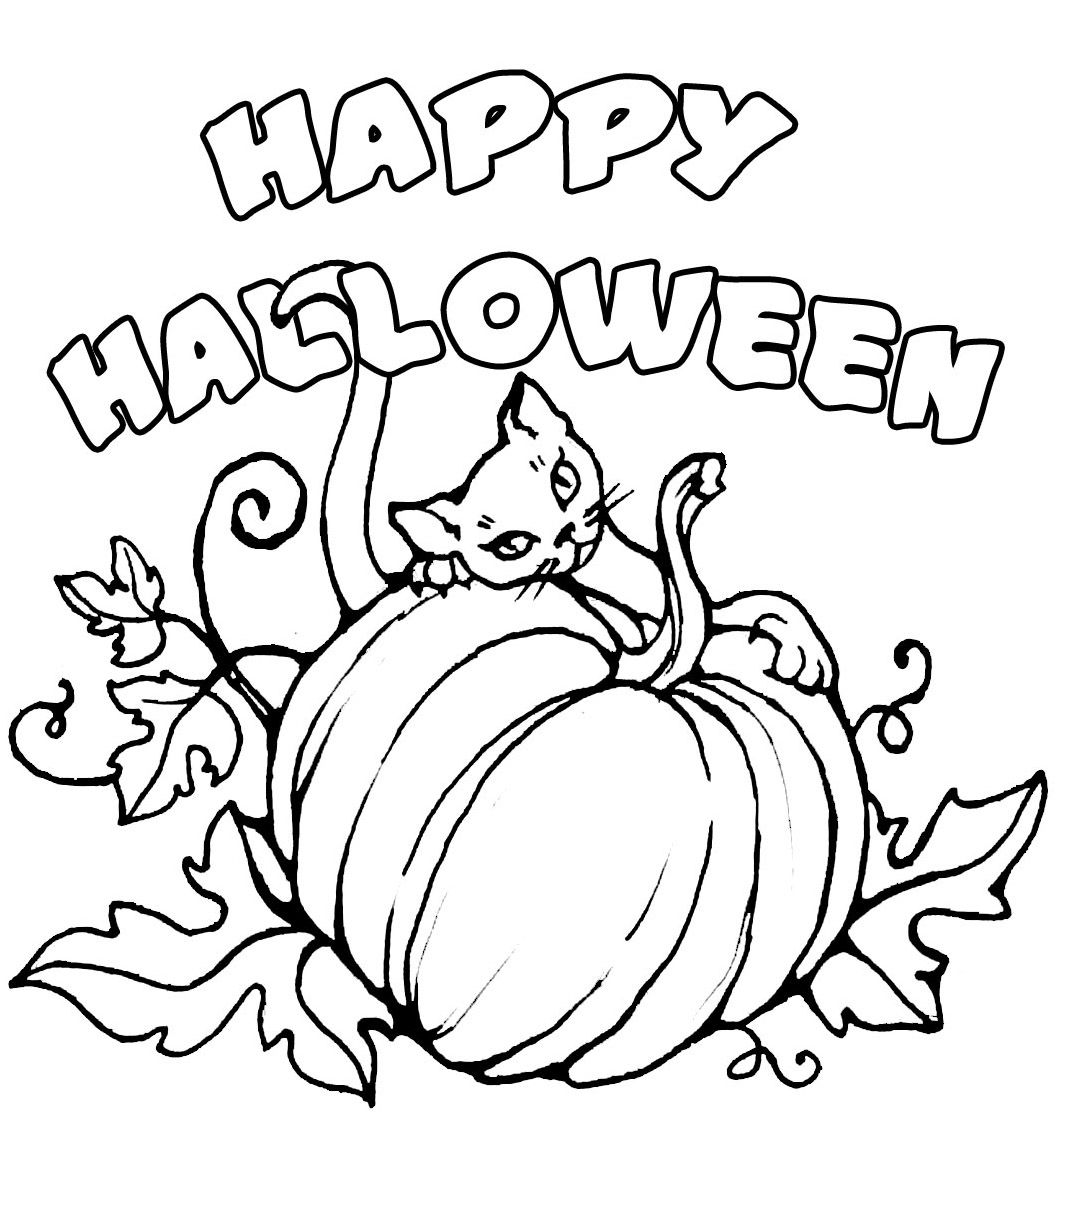 Halloween Coloring Page Of A Cat With A Pumpkin And A Happy